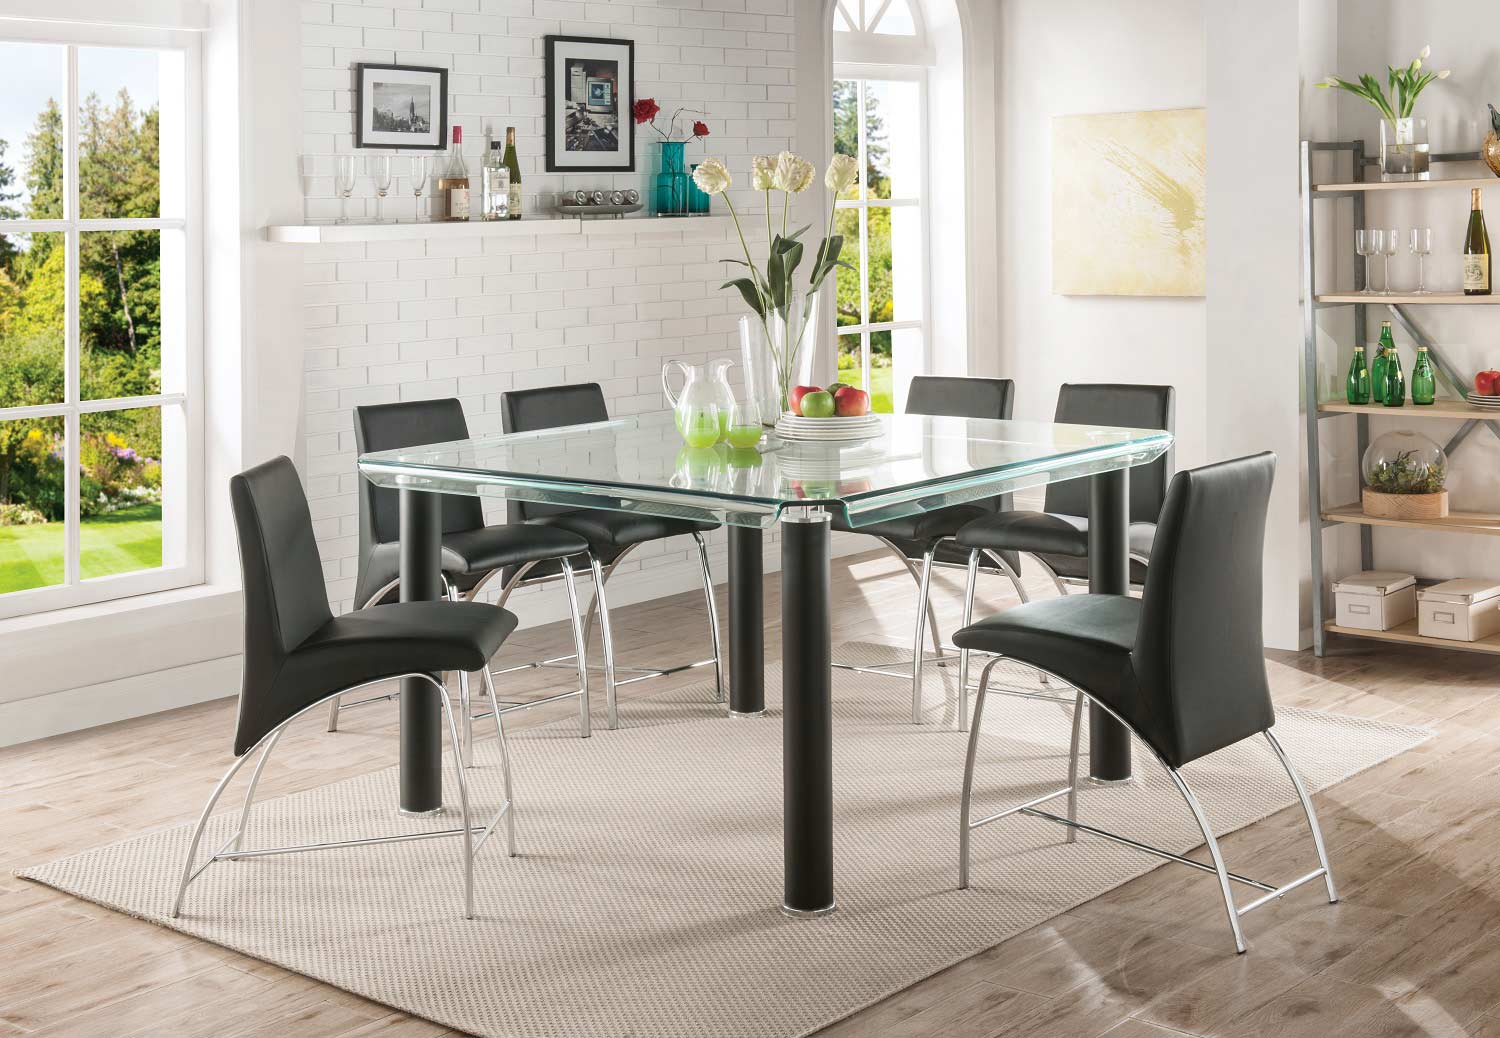 Acme Gordie Curved Metal Shape Counter Height Dining Set - Black/Clear Glass/Chrome